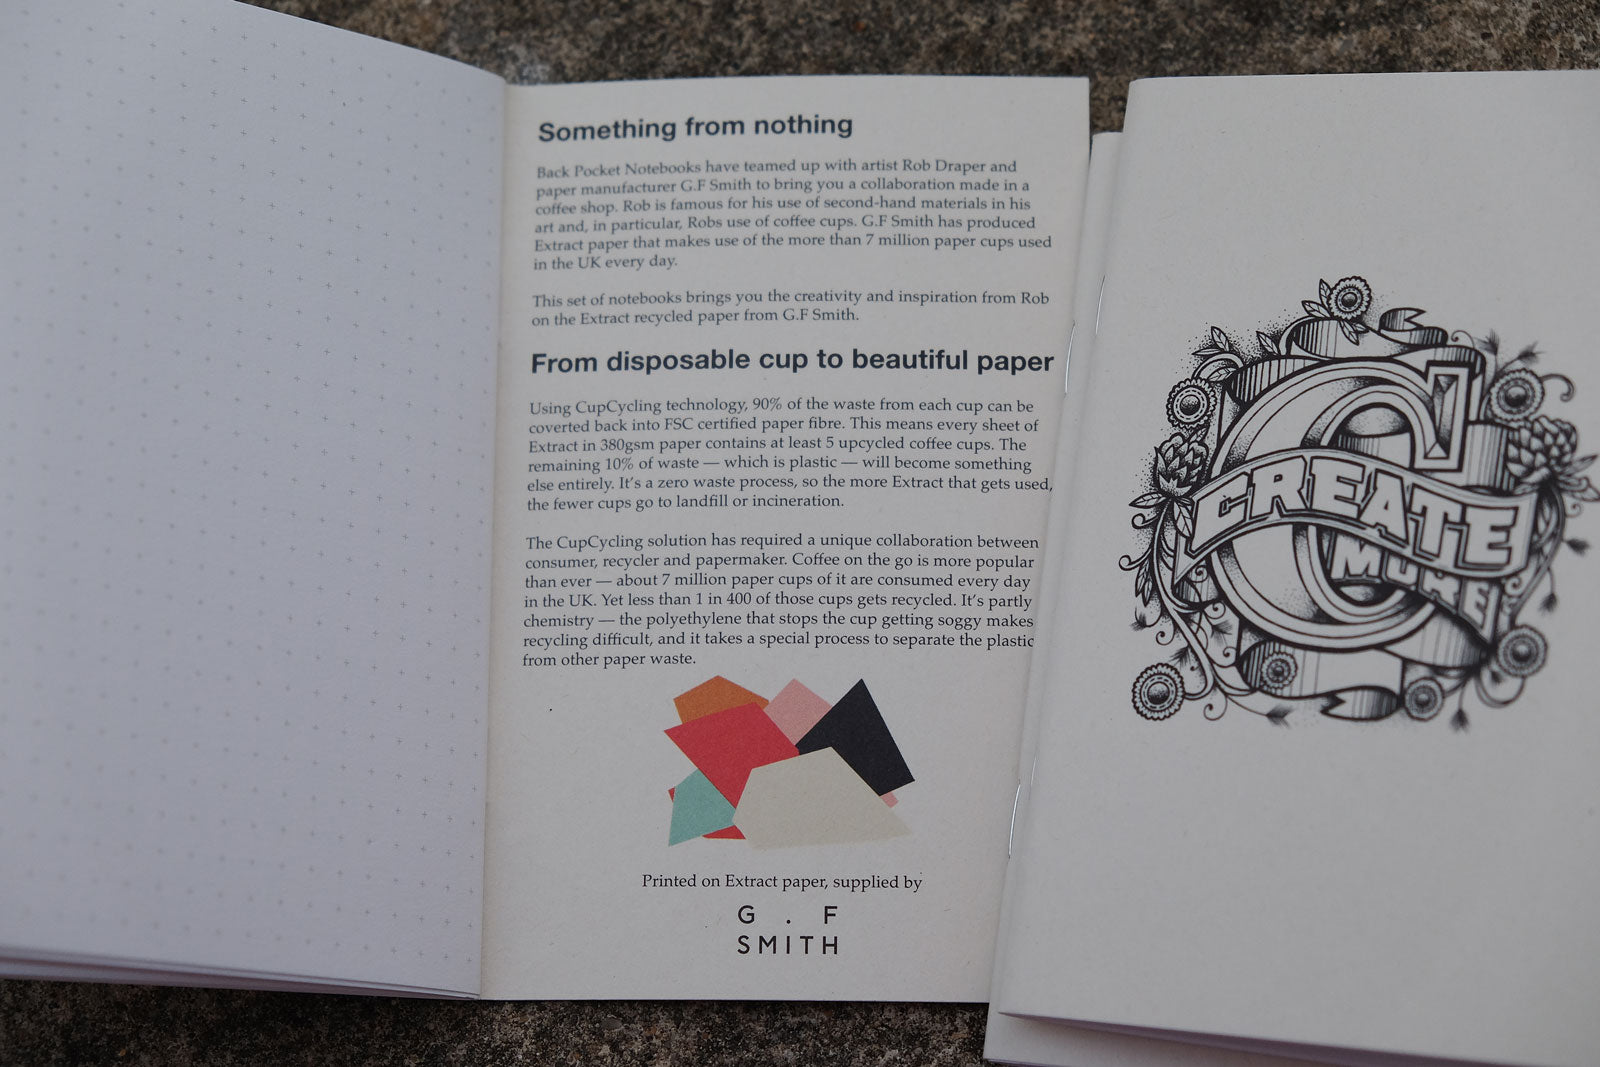 Coffee Cup Notebooks featuring Rob Draper - Inner back cover